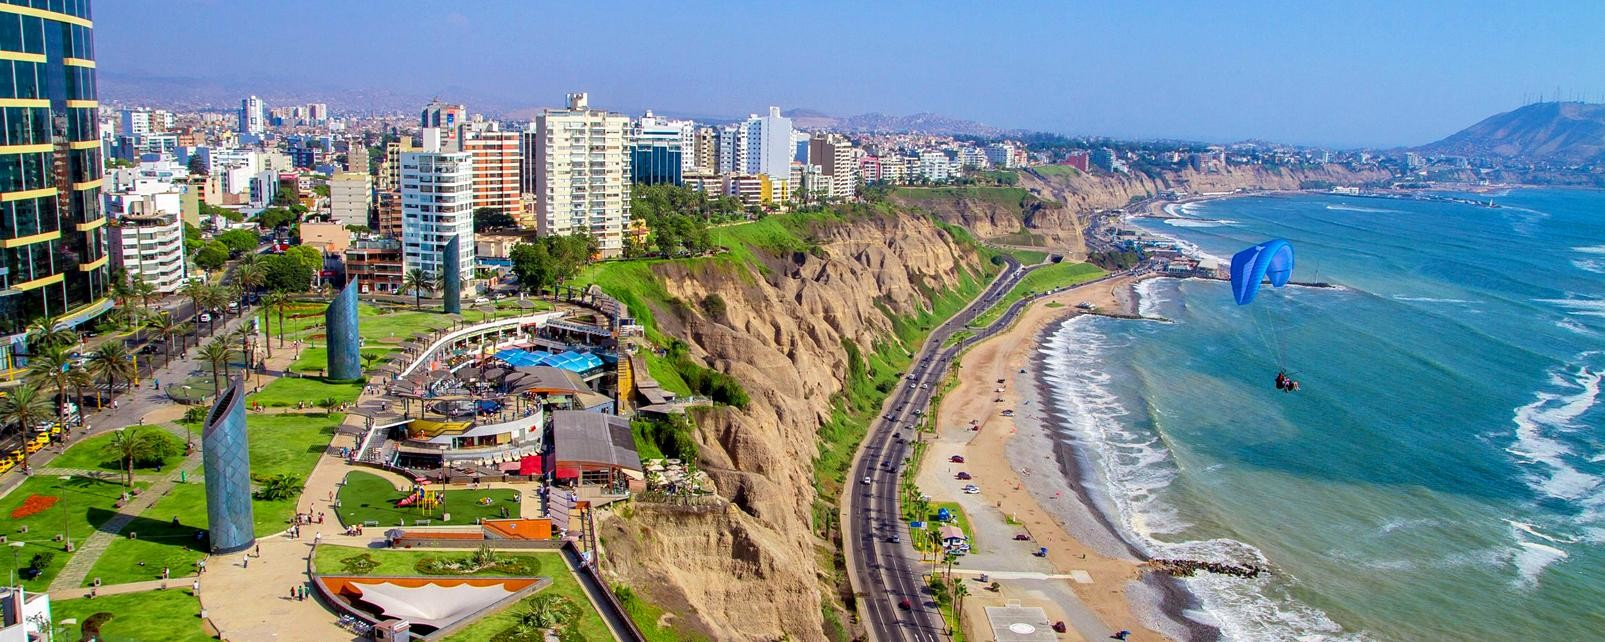 Experience In Lima Peru By Jose Erasmus Experience Lima - Where is lima